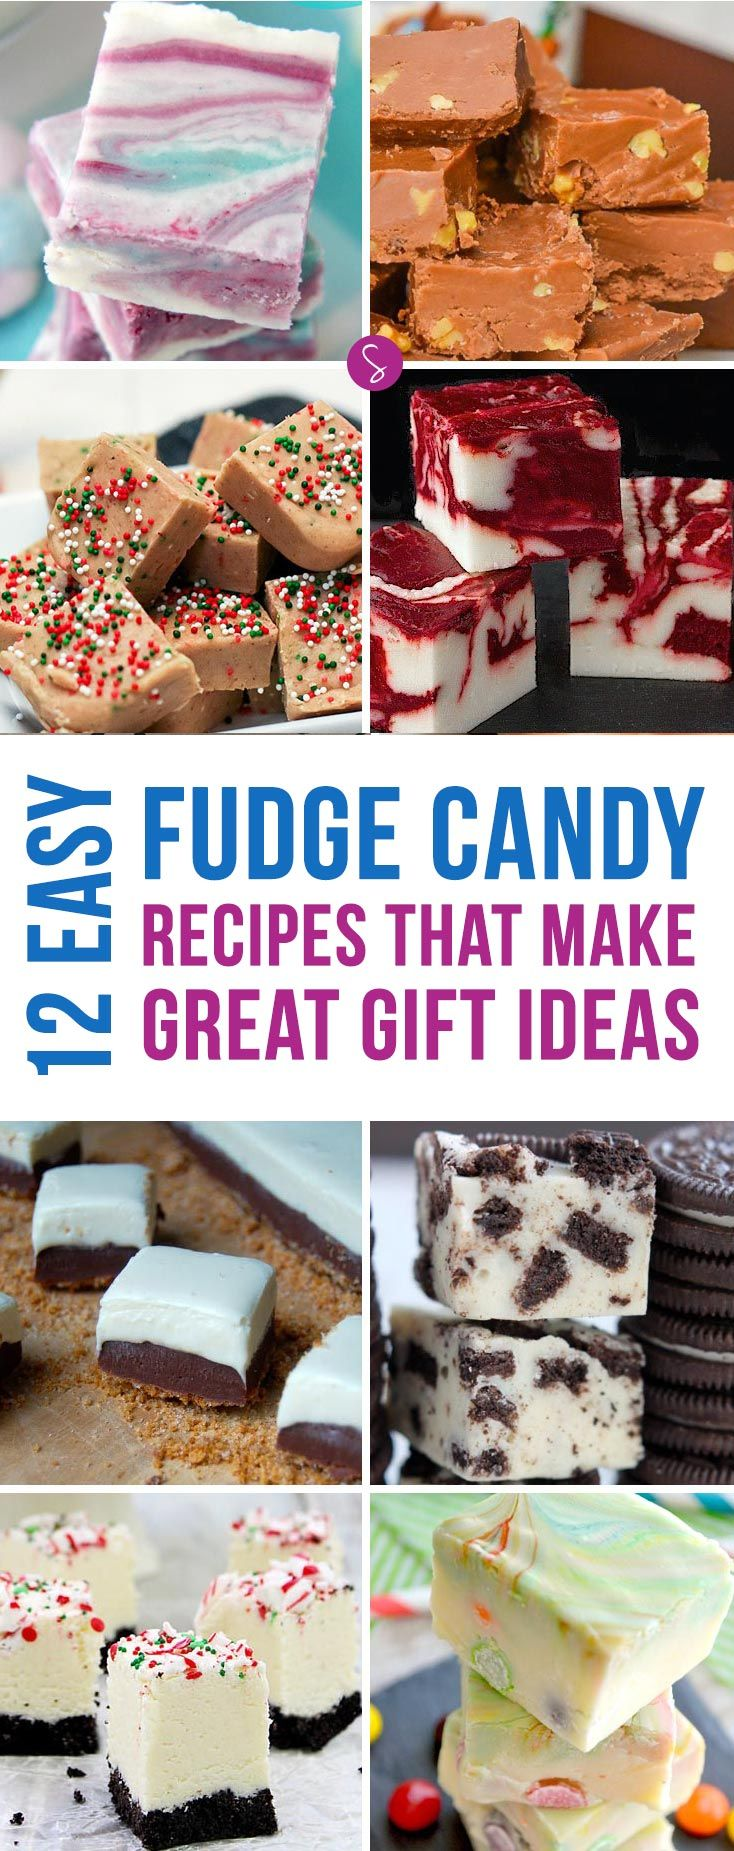 Best 155 gift ideas ideas on pinterest easter crafts hoppy easter homemade fudge candy recipes that make wonderfully edible gifts forumfinder Images